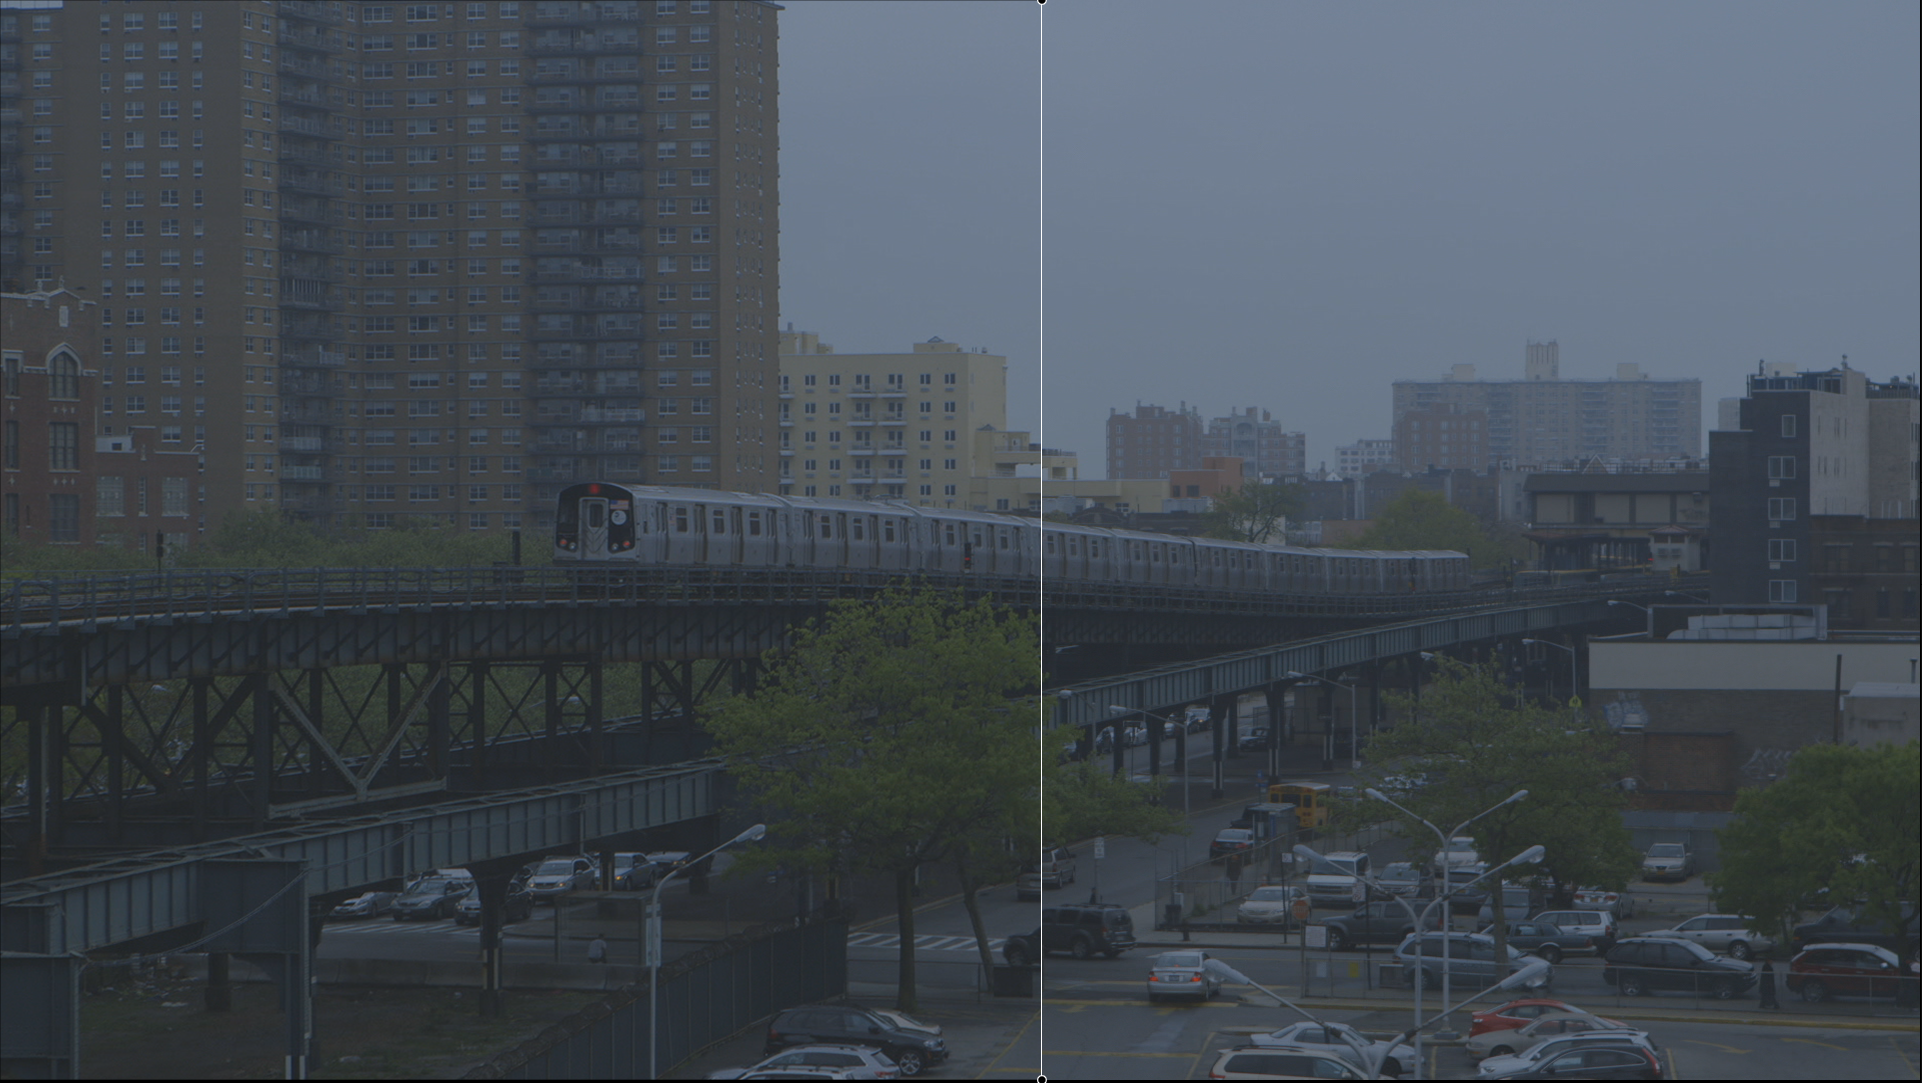 Steady - Long lens causes camera shake - fixed and image zoomed on left